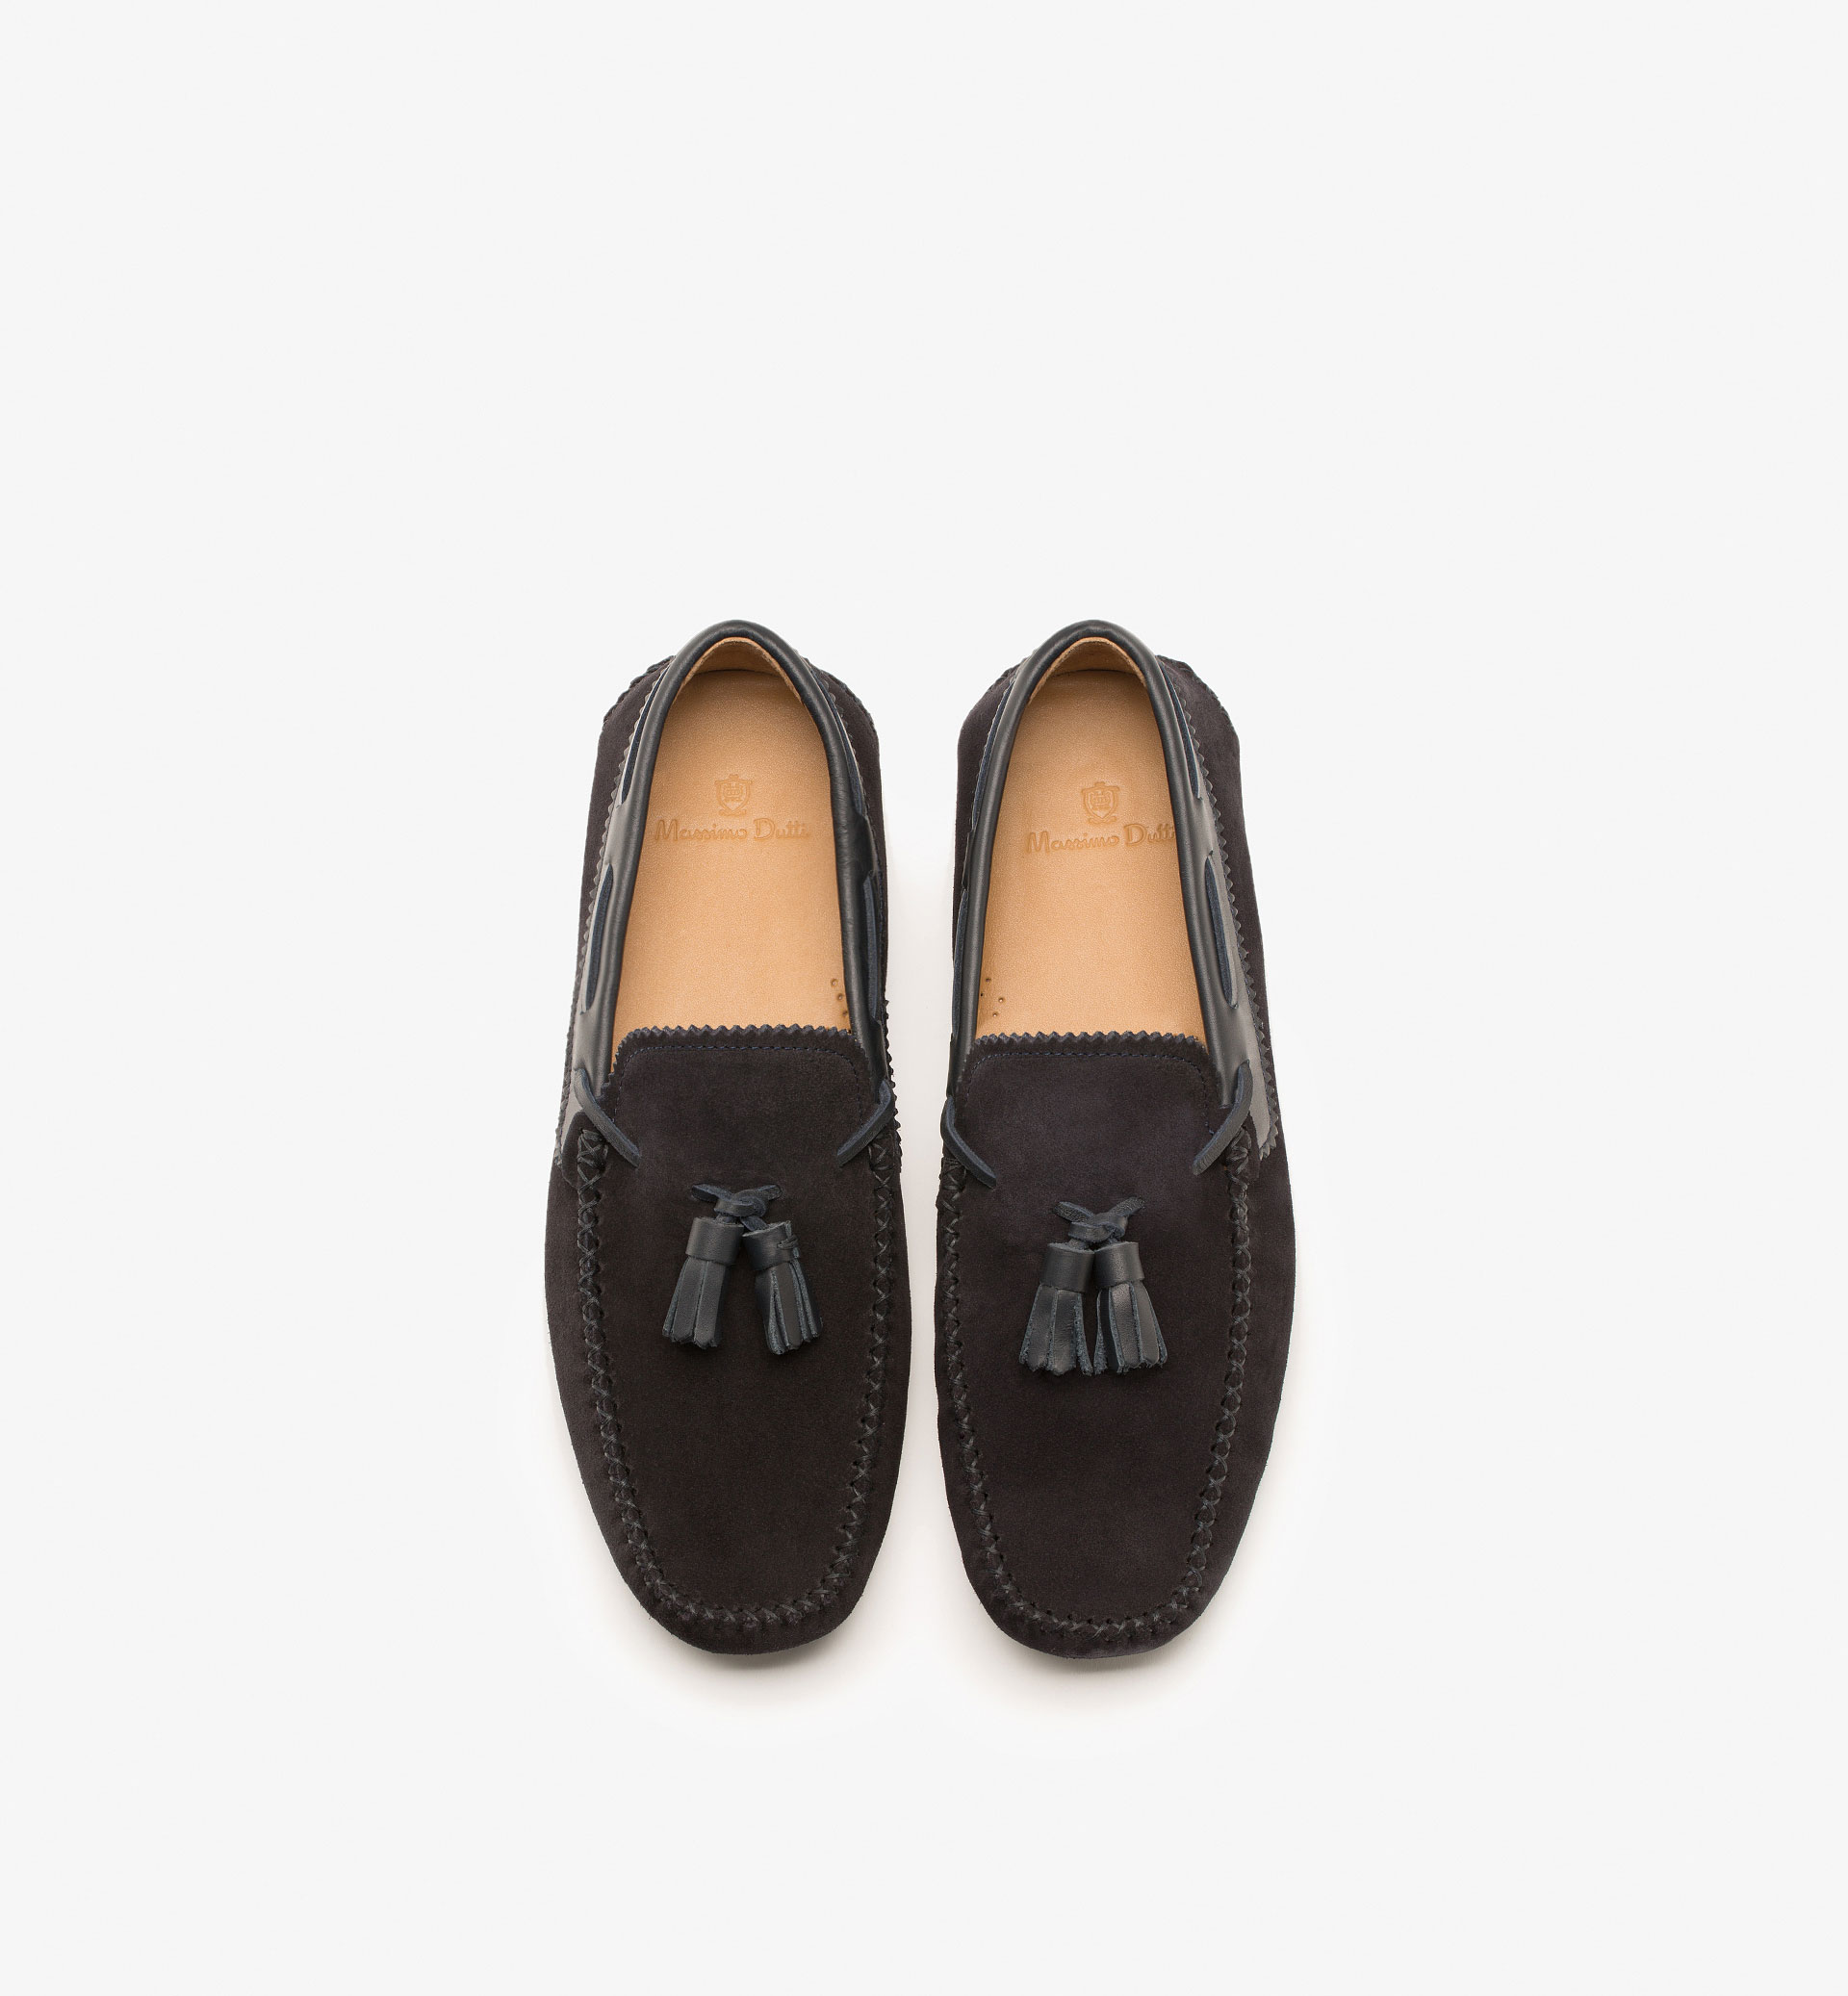 SPLIT SUEDE LOAFERS WITH BLUE TASSELS